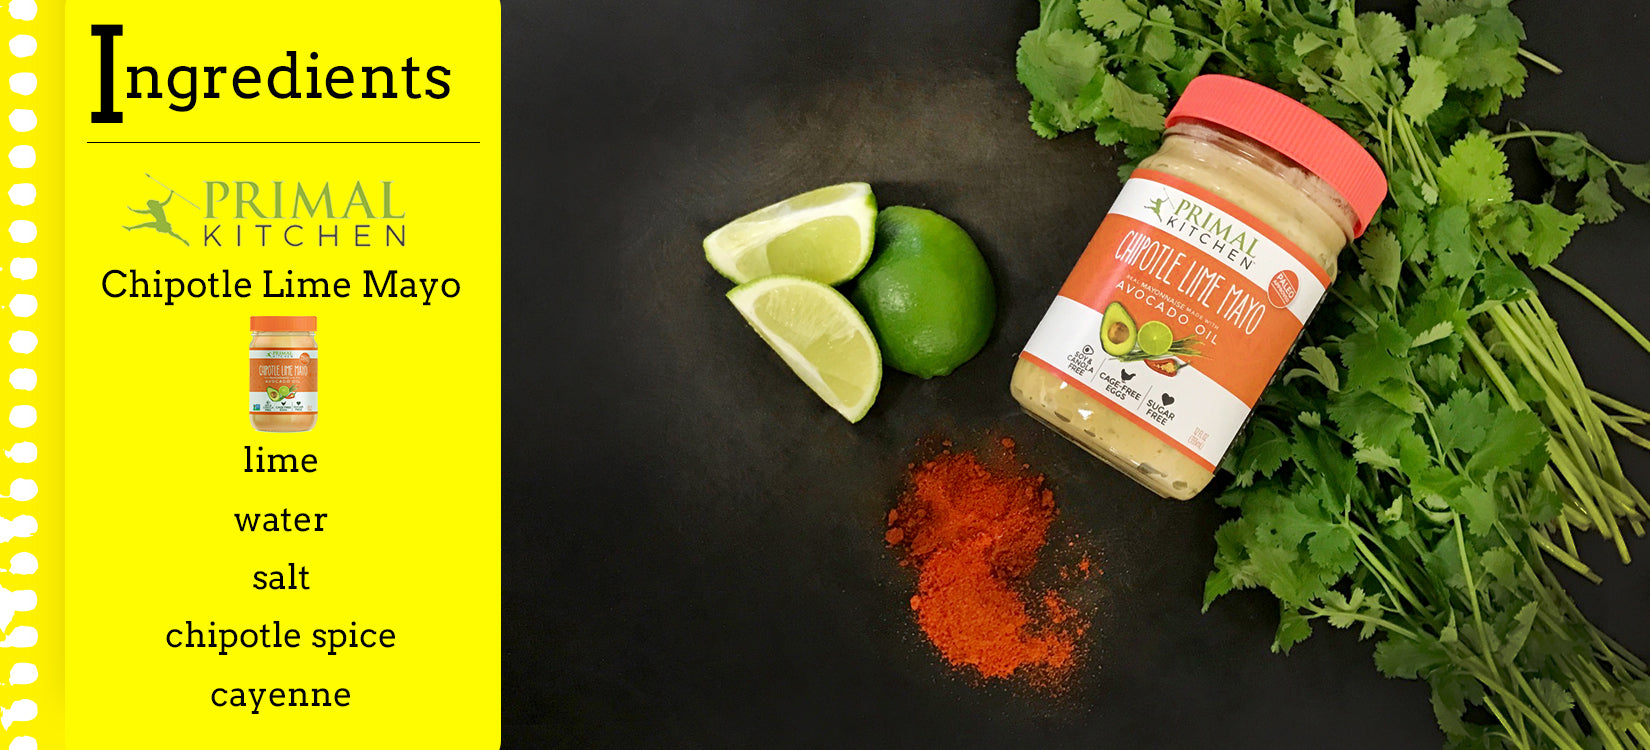 Primal Kitchen Ranch make model meals at home: primal kitchen creamy chipotle lime